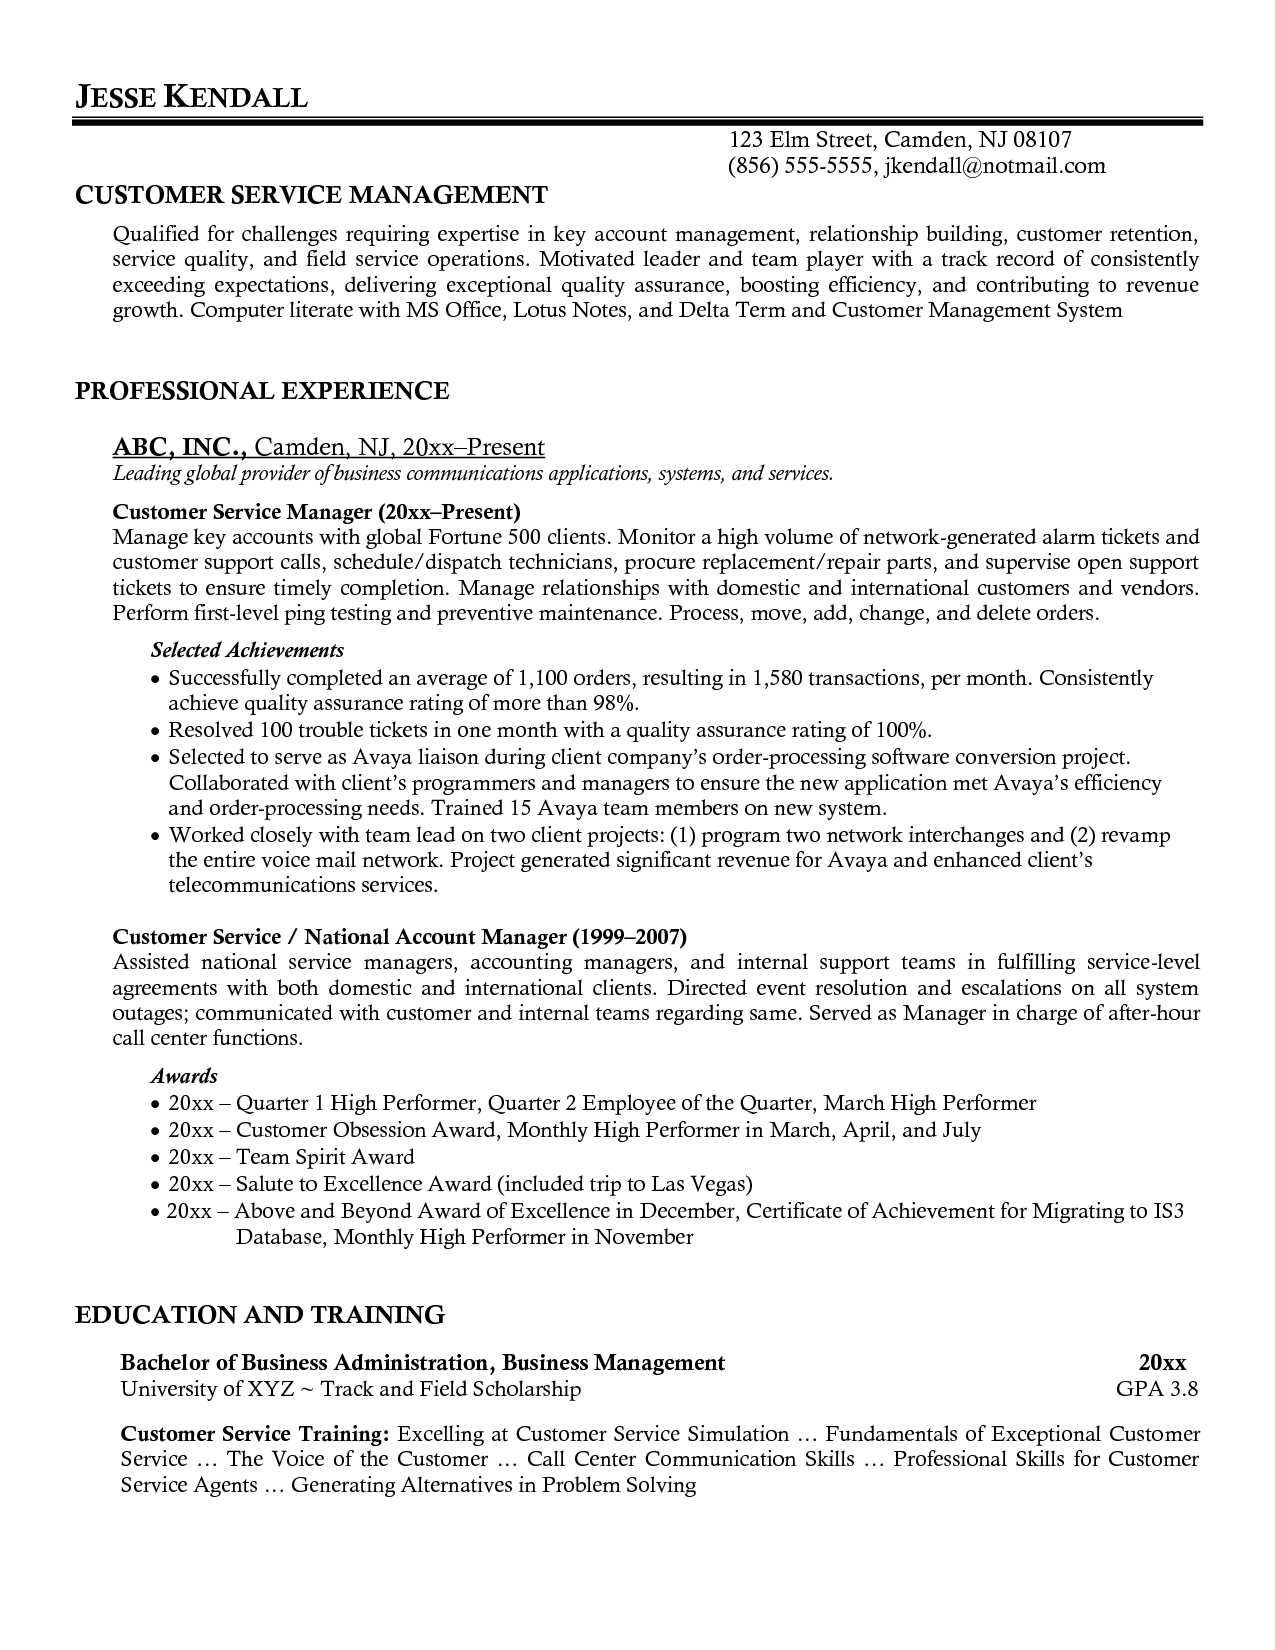 Certified Professional Resume Writers Canada Executive Application Letter  For Ojt Accounting Students  Professional Resume Service